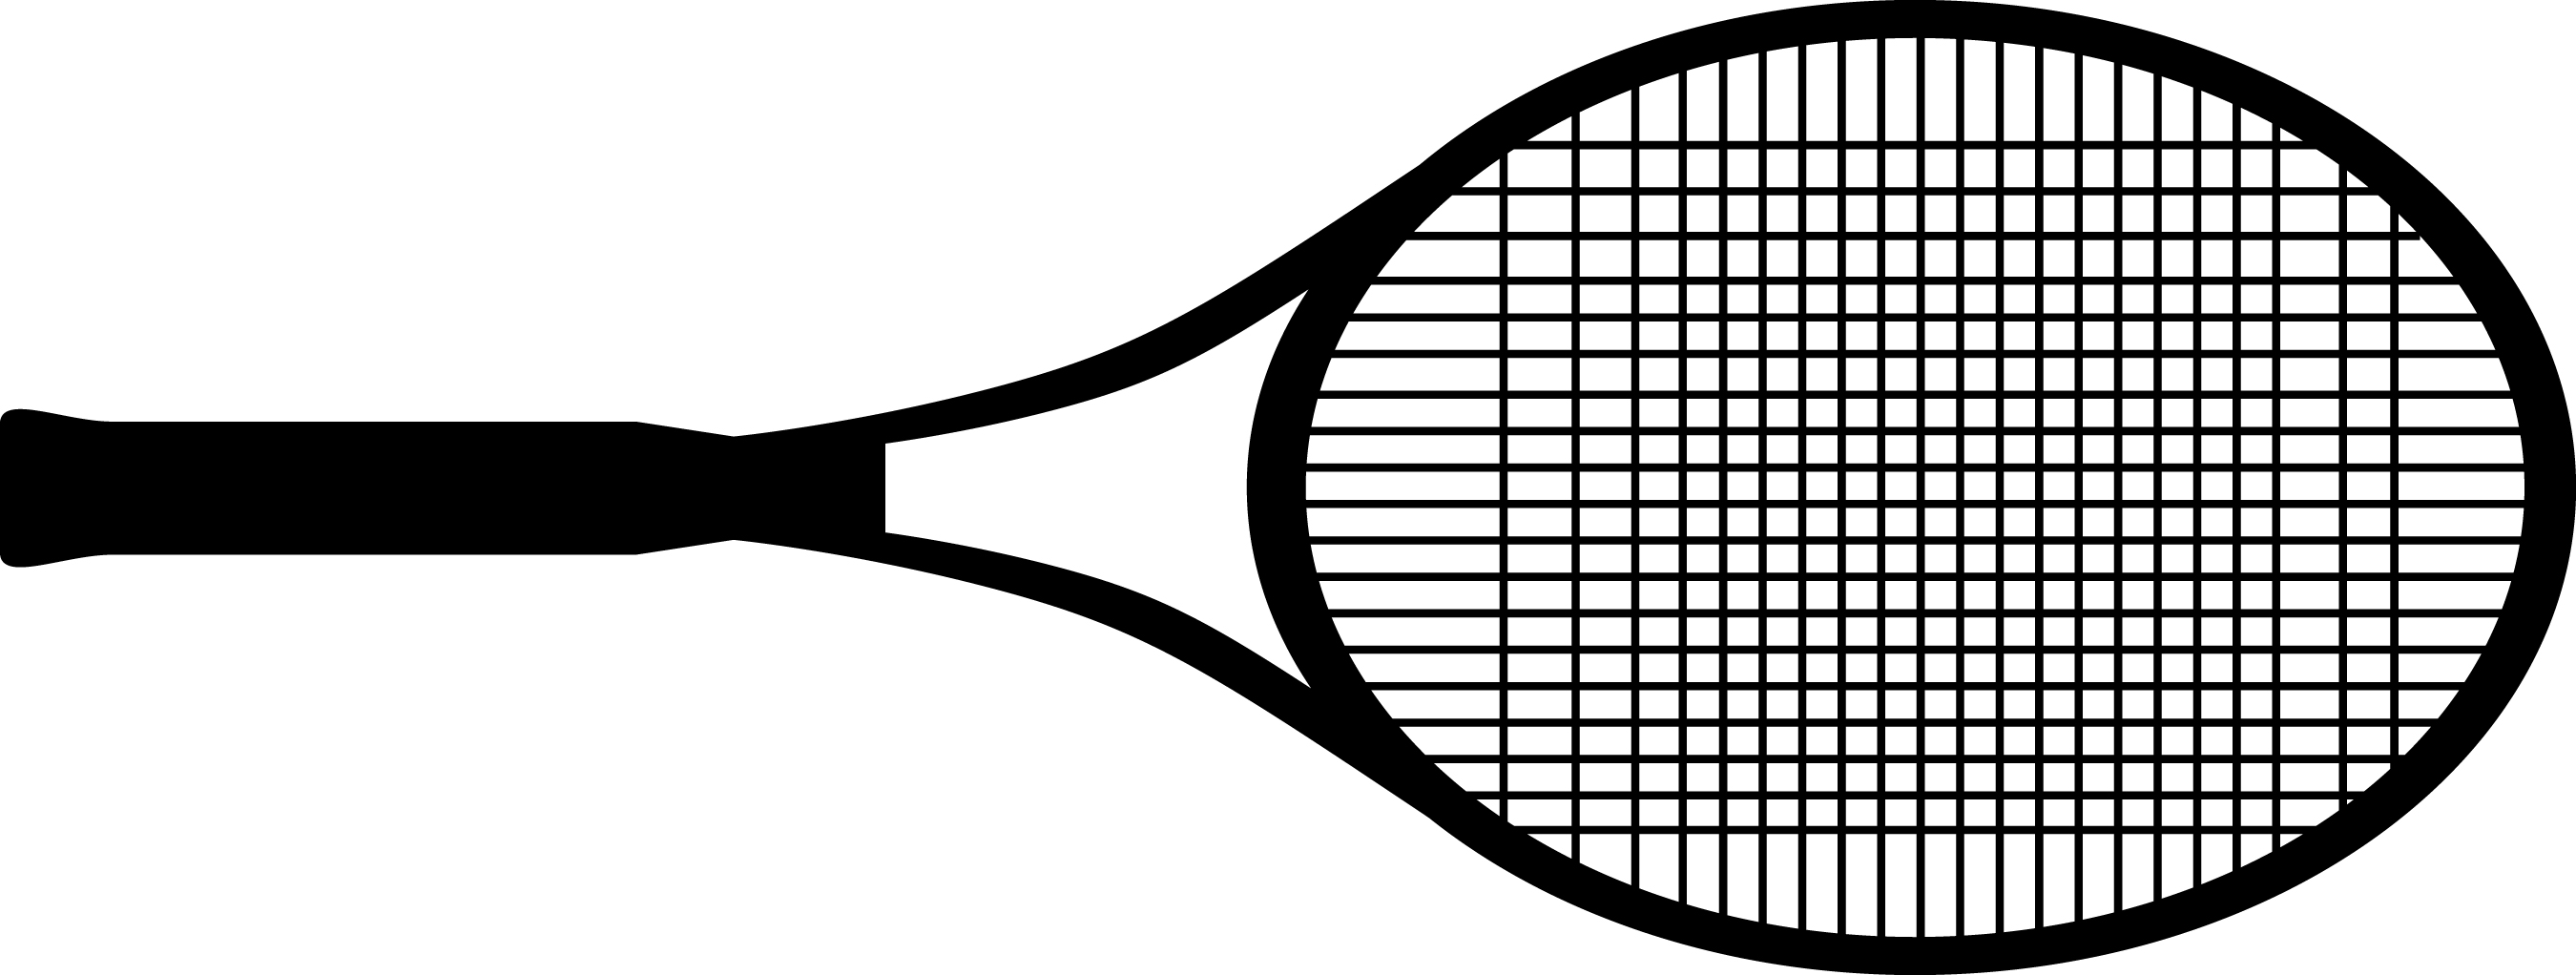 Cilpart merry recommendations racquet. Racket clipart lawn tennis svg library stock